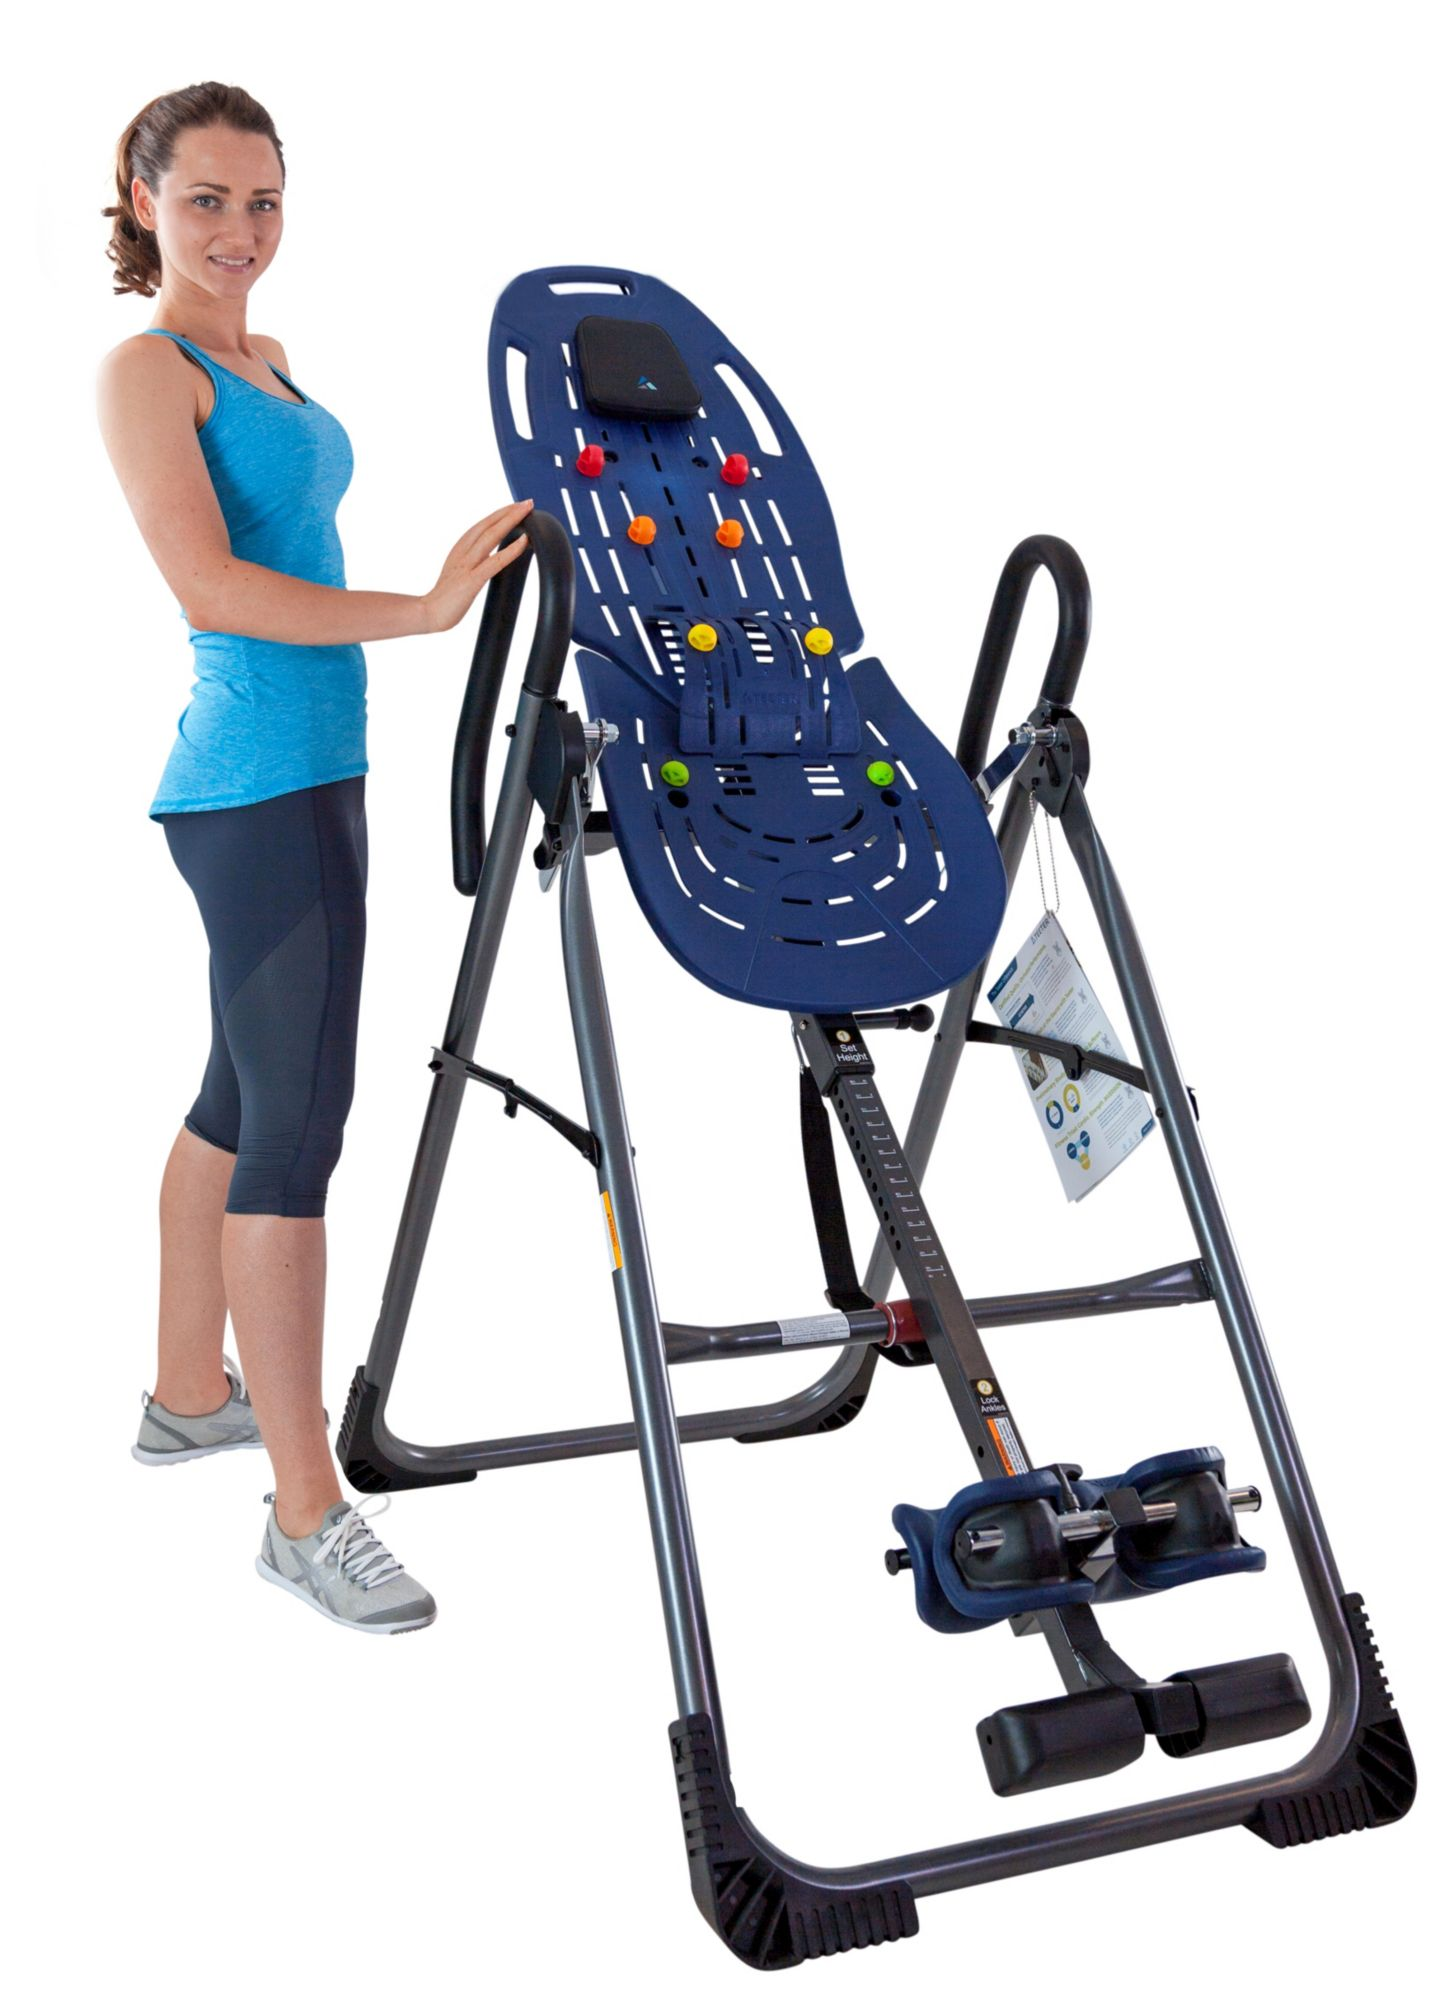 Teeter inversion table weight limit mloovi blog for Table inversion